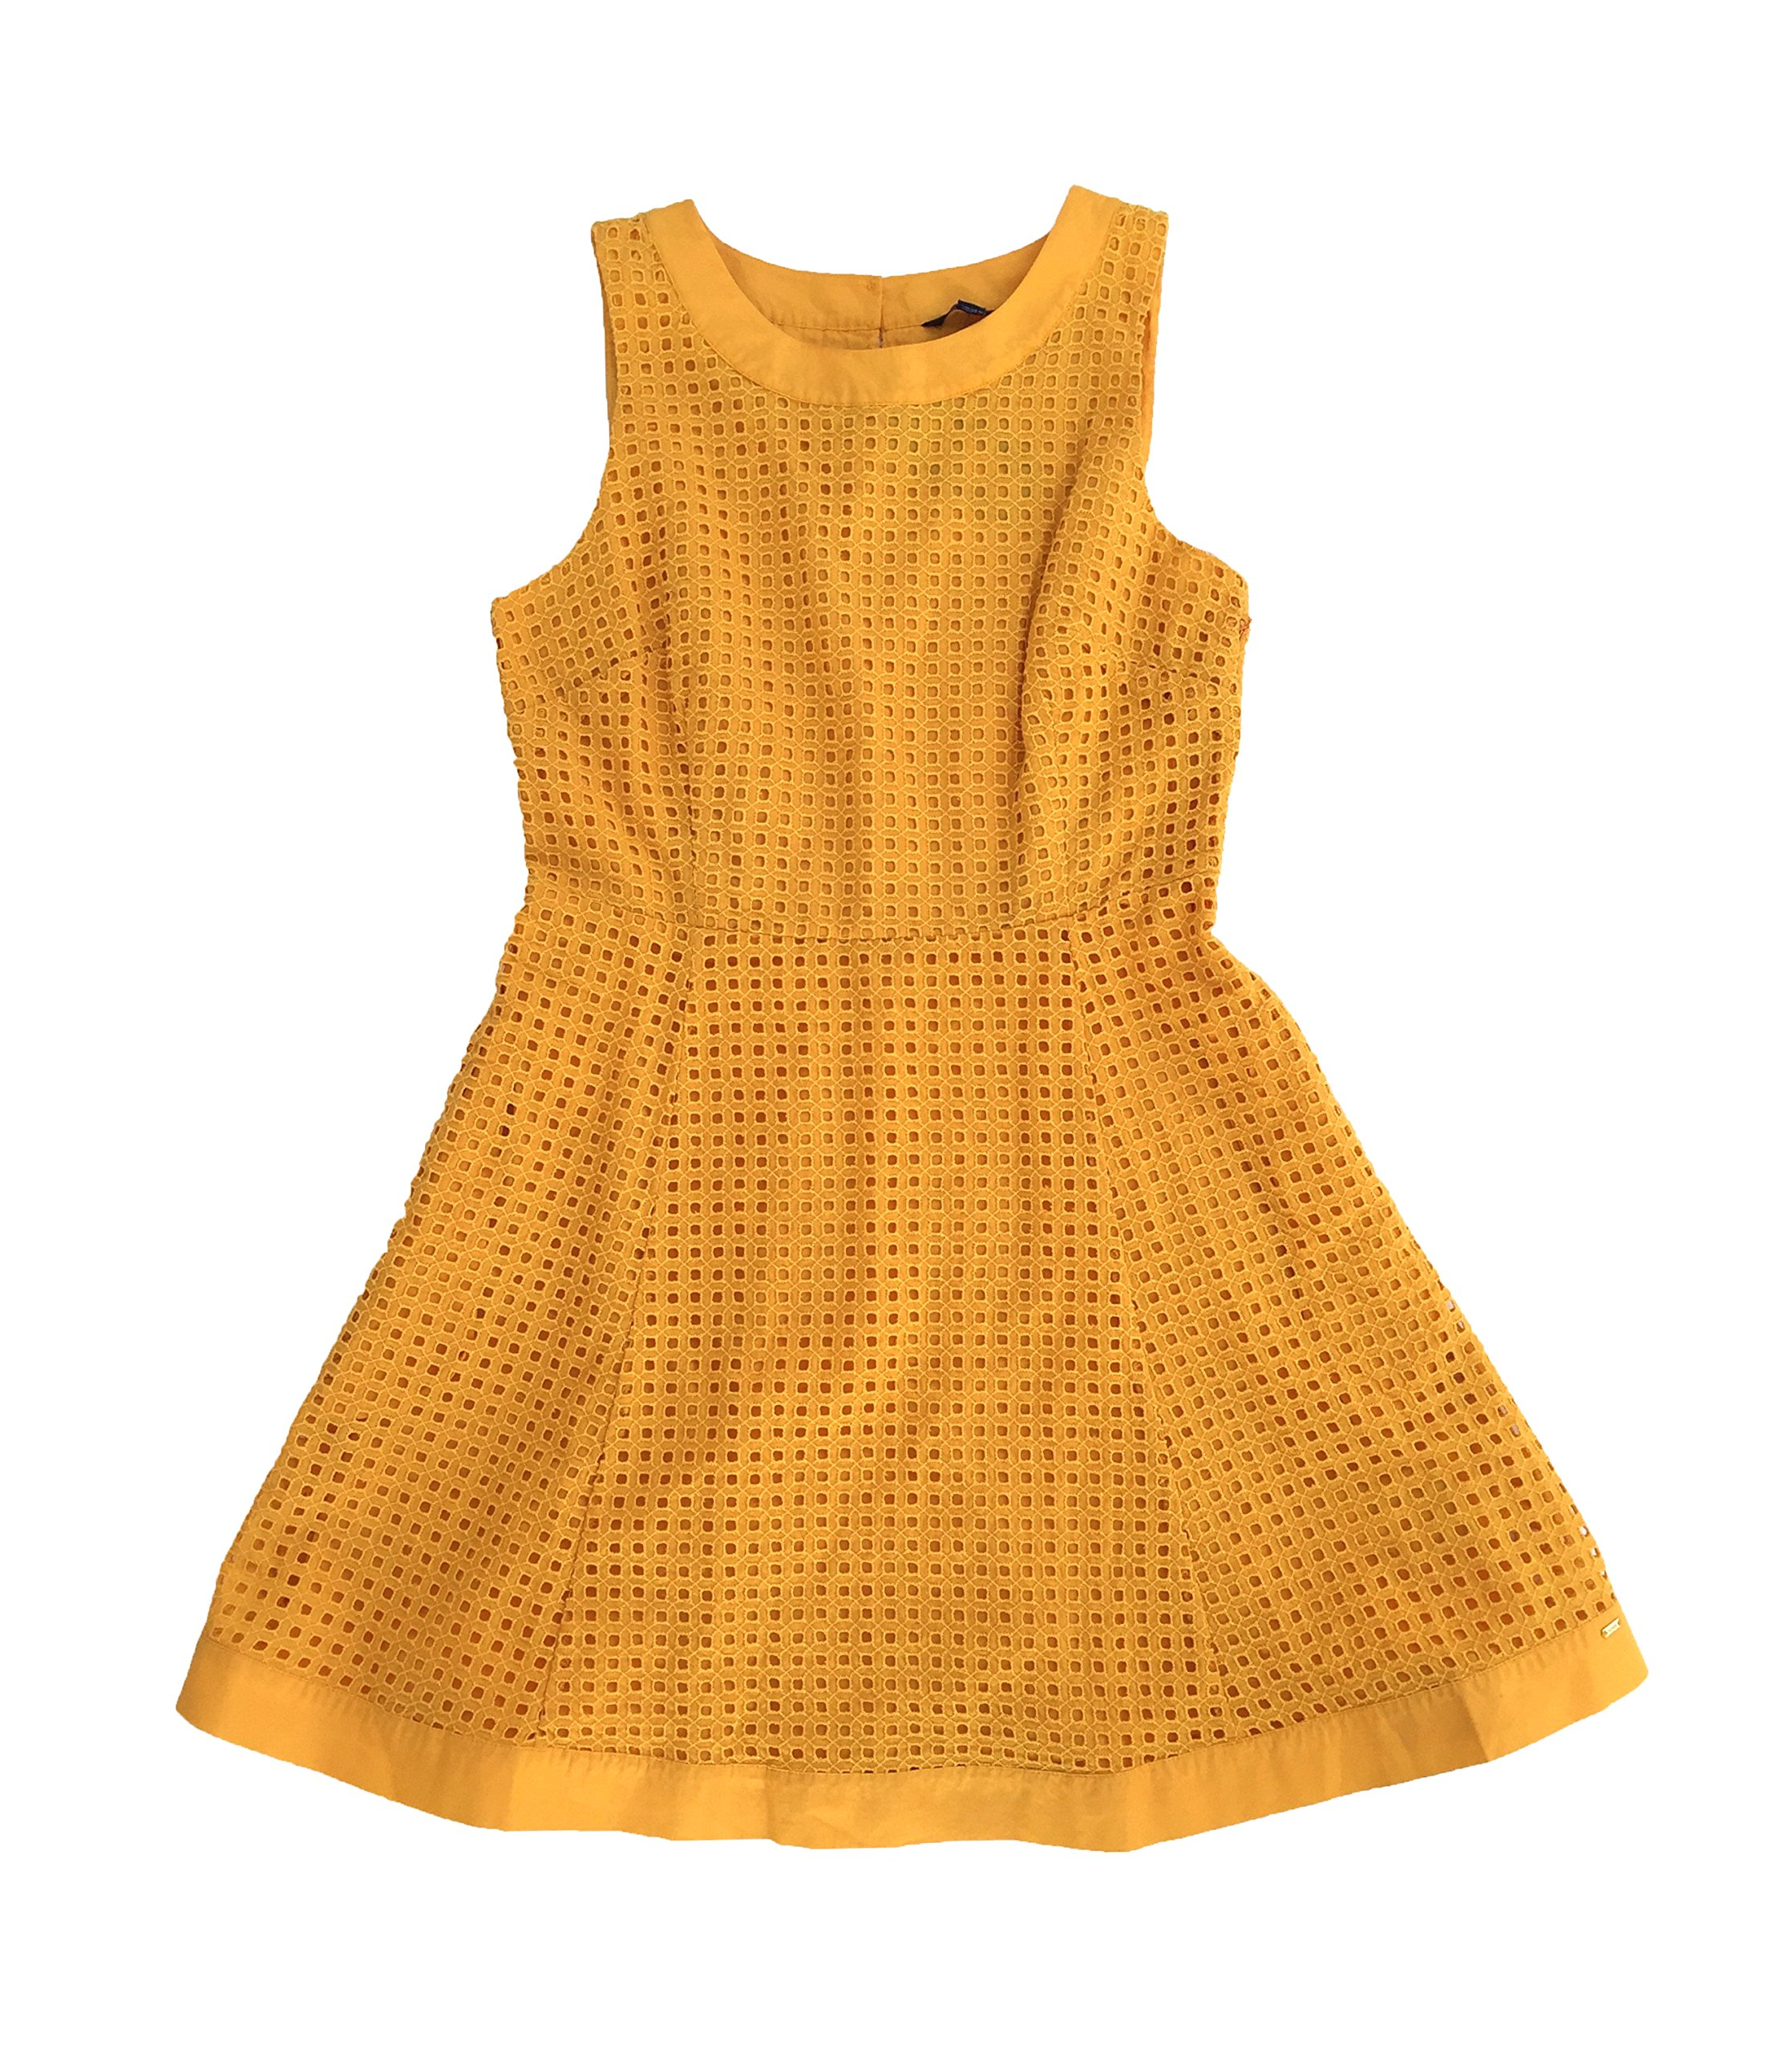 Available at Amazon: Tommy Hilfiger Women's Eyelet Fit & Flare Dress Yellow